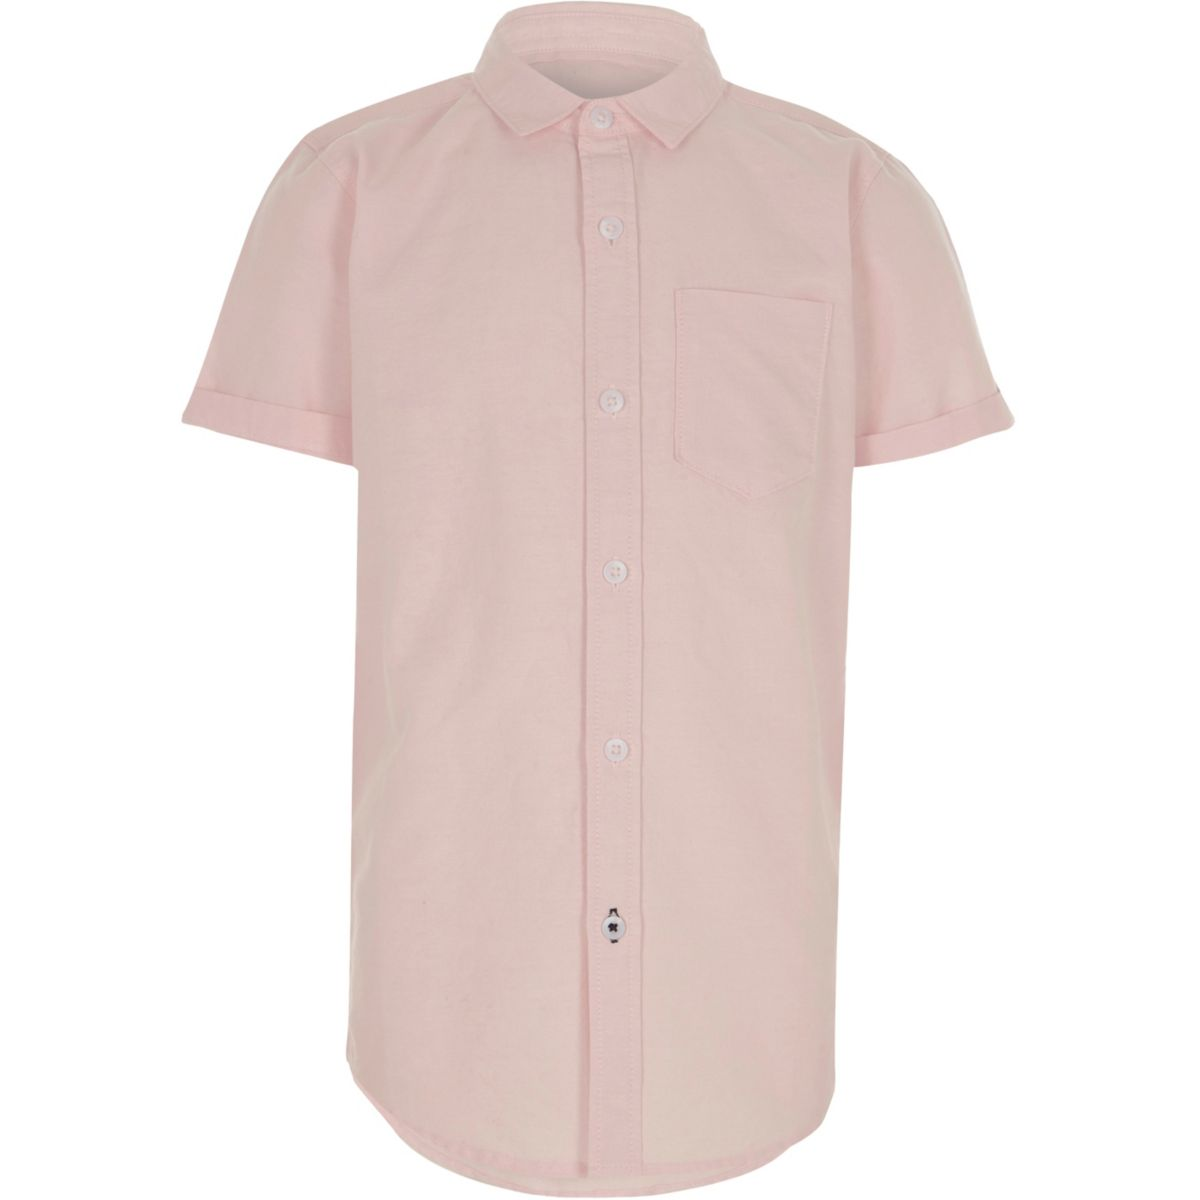 Boys pink short sleeve Oxford shirt